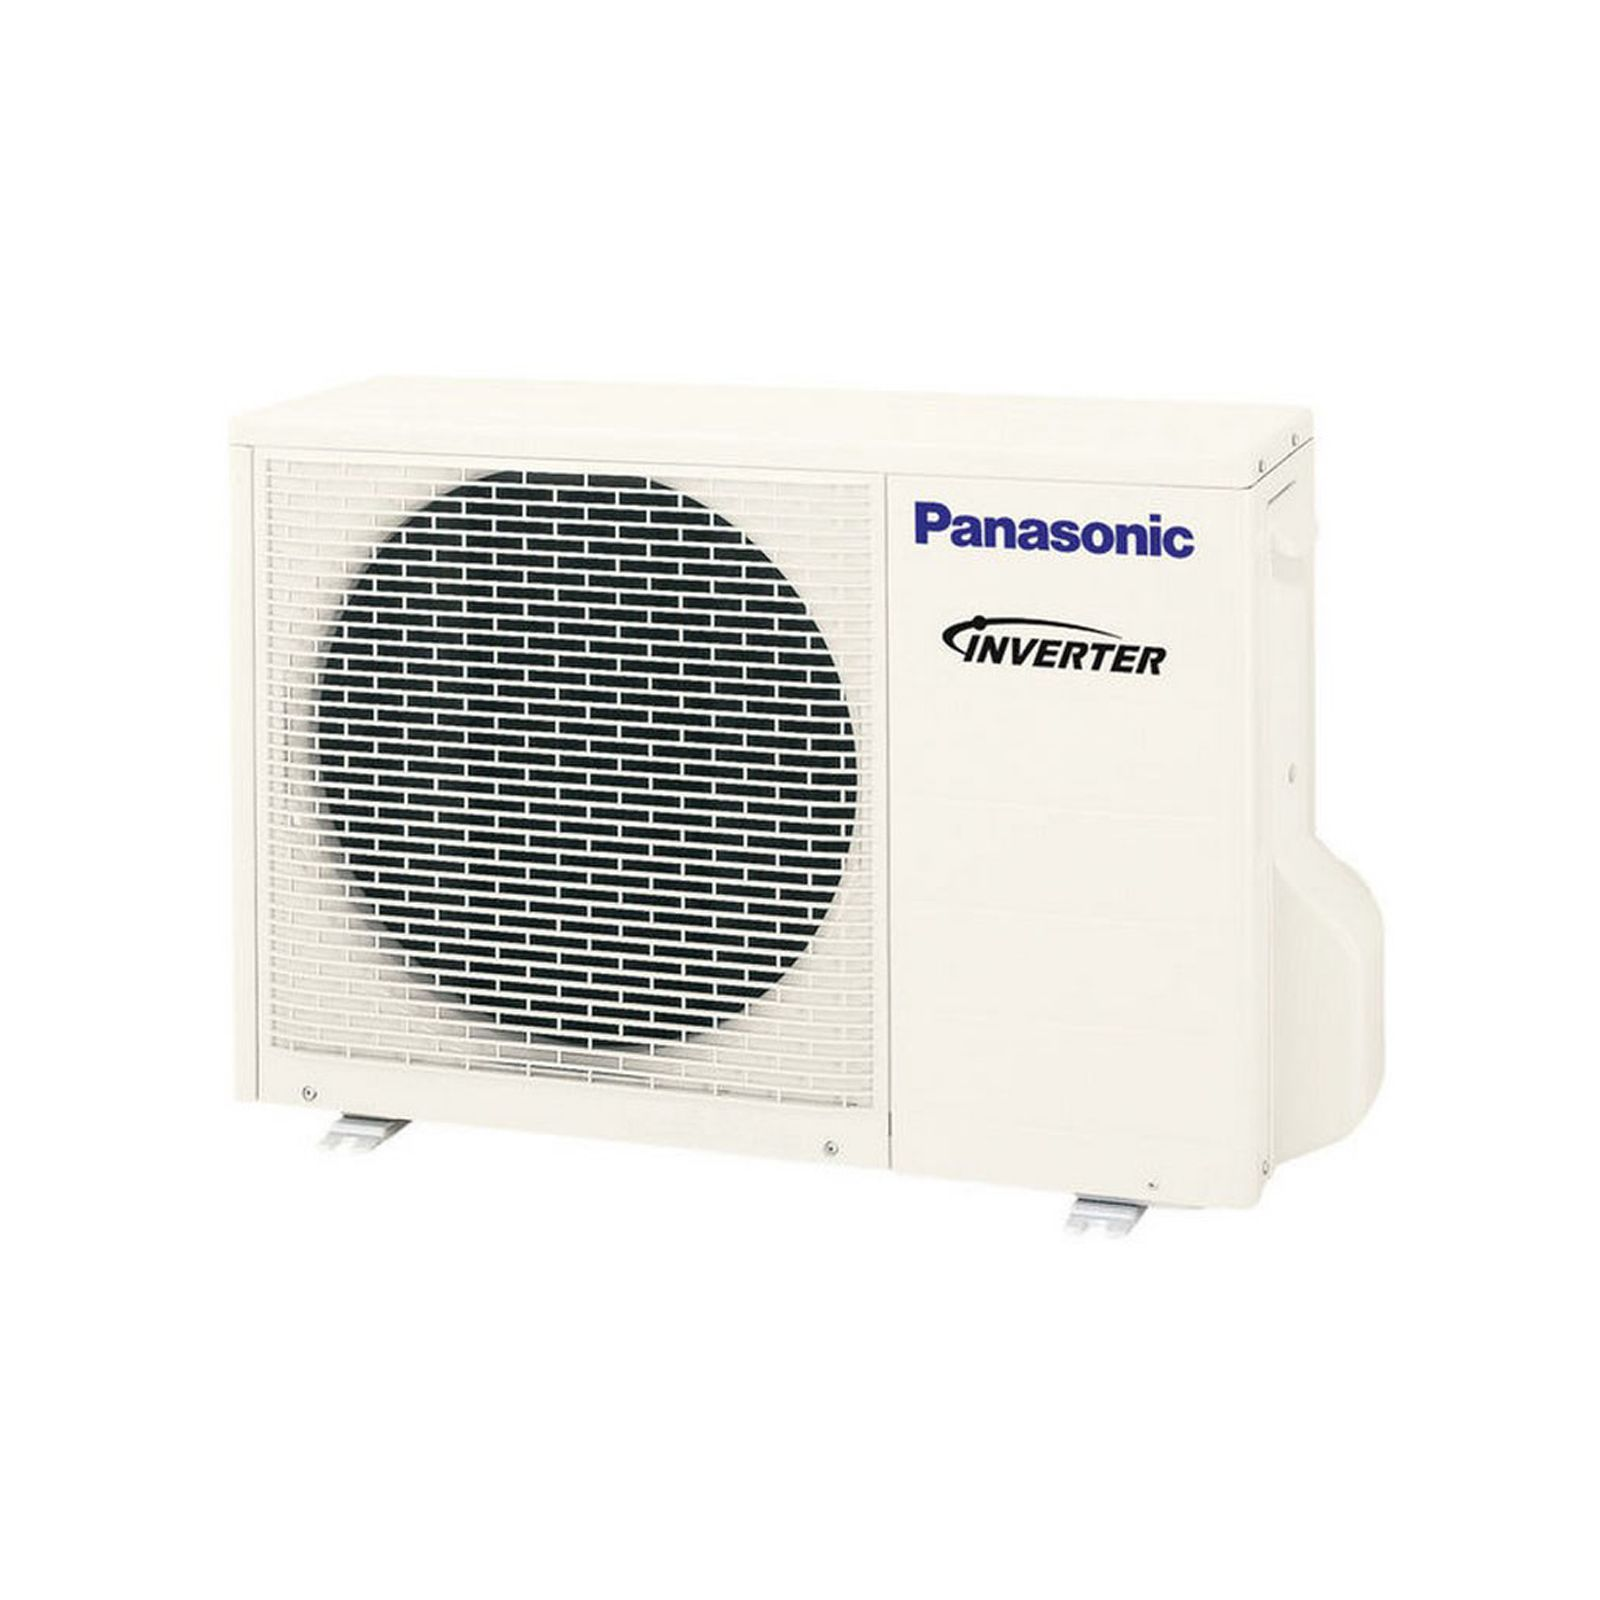 Panasonic CS-RE12SKUA - 12K BTU/H Indoor Wall Mount Heat Pump, 16 SEER, 208-230/1/60